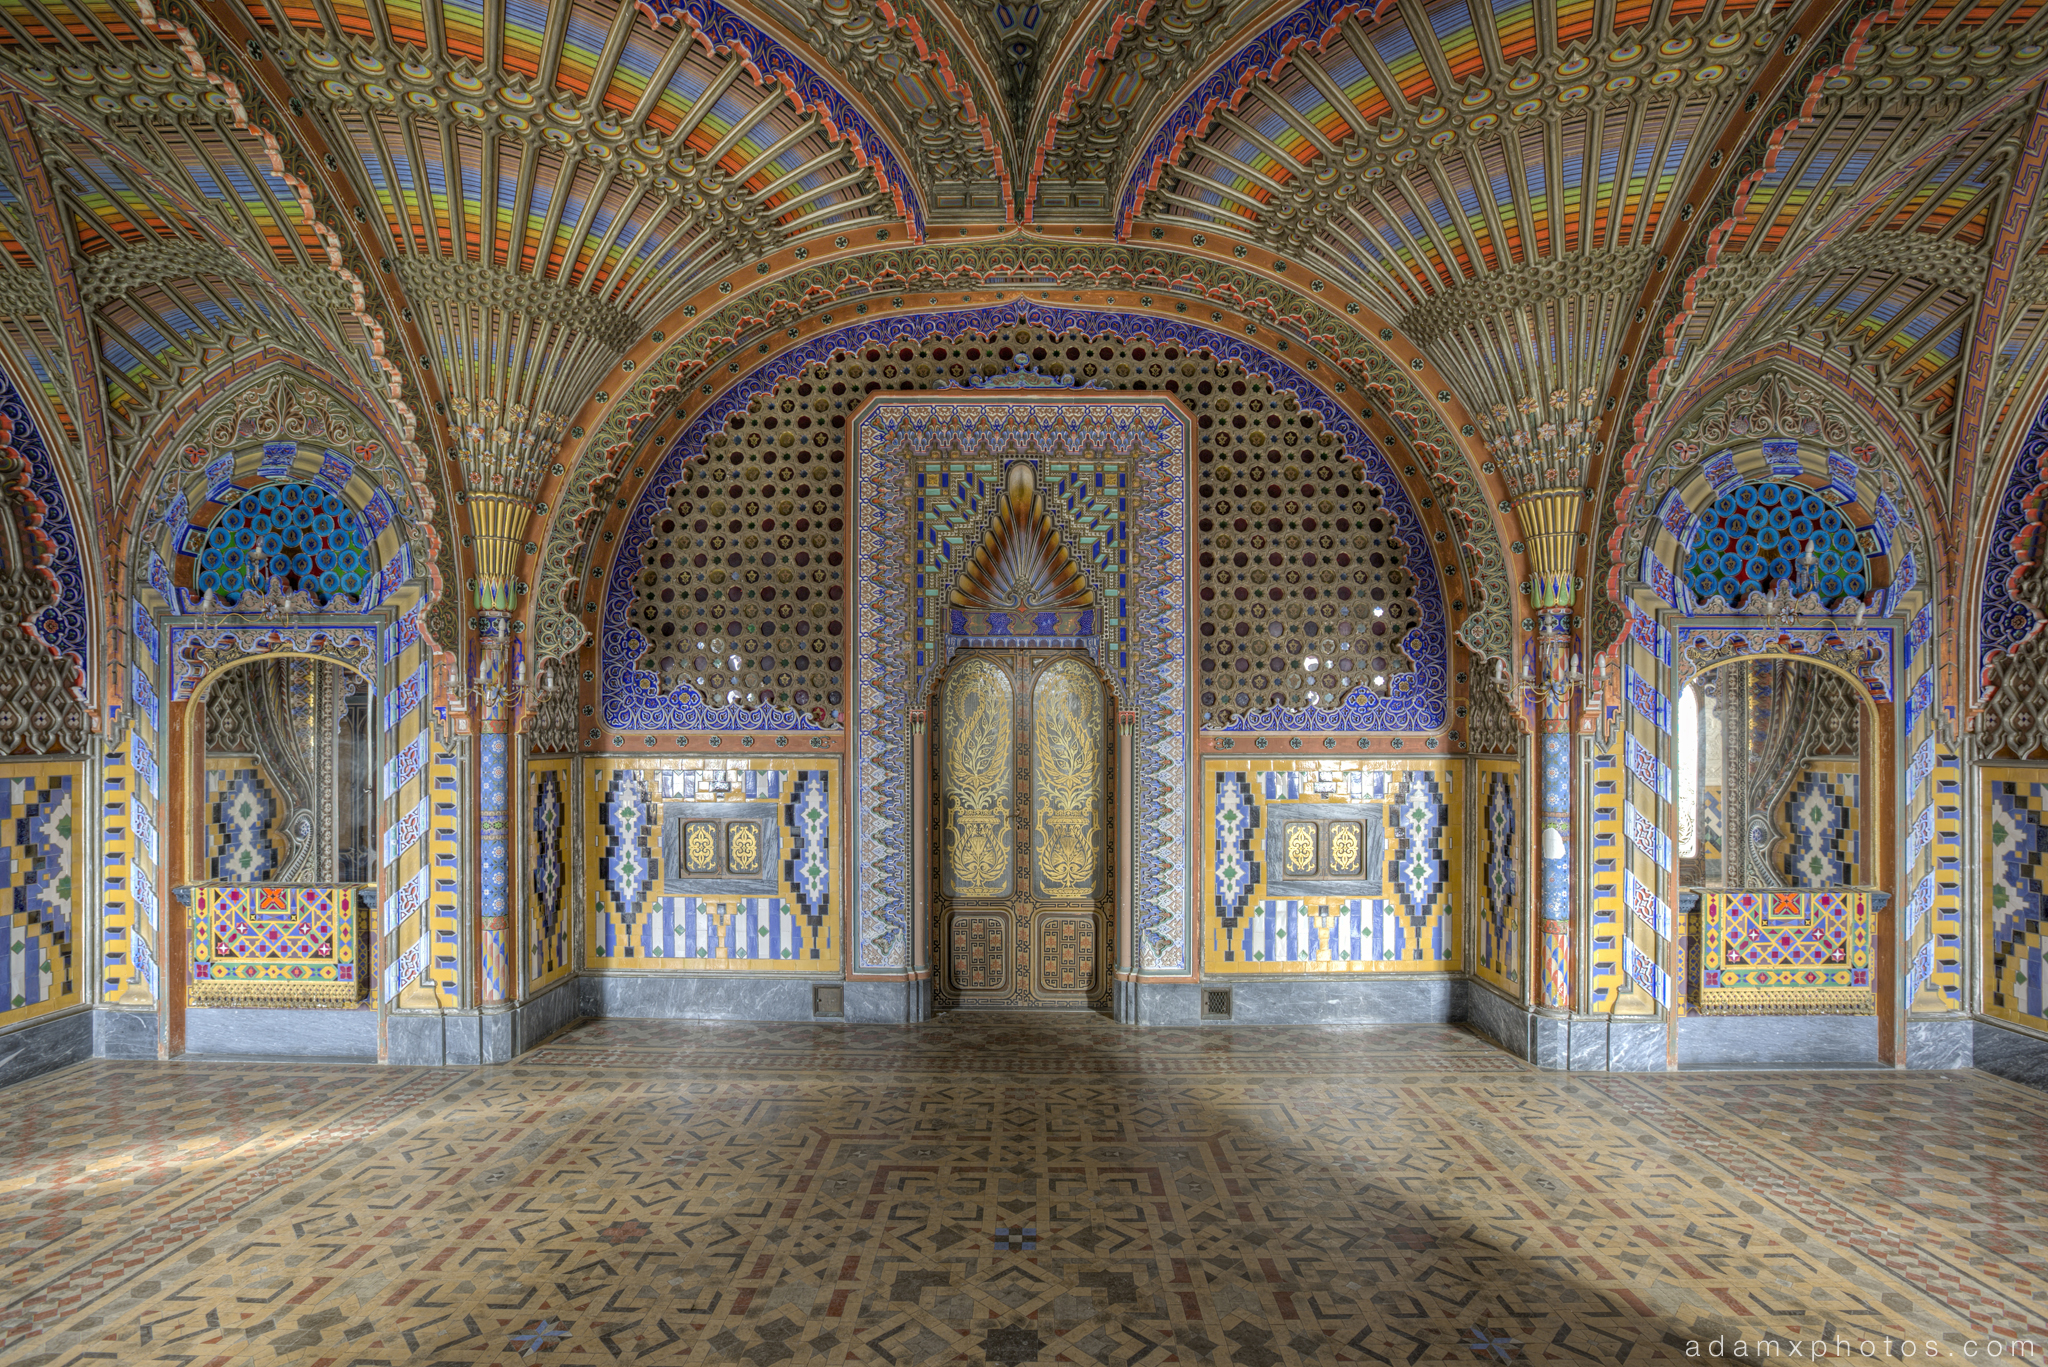 The Peacock Room fans ceiling sala dei Pavoni Non Plus Ultra Fairytale Castle of Sammezzano Castello di Sammezzano Urbex Adam X Urban Exploration photo photos report decay detail UE abandoned Ornate Moorish tiling tiled derelict unused empty disused decay decayed decaying grimy grime